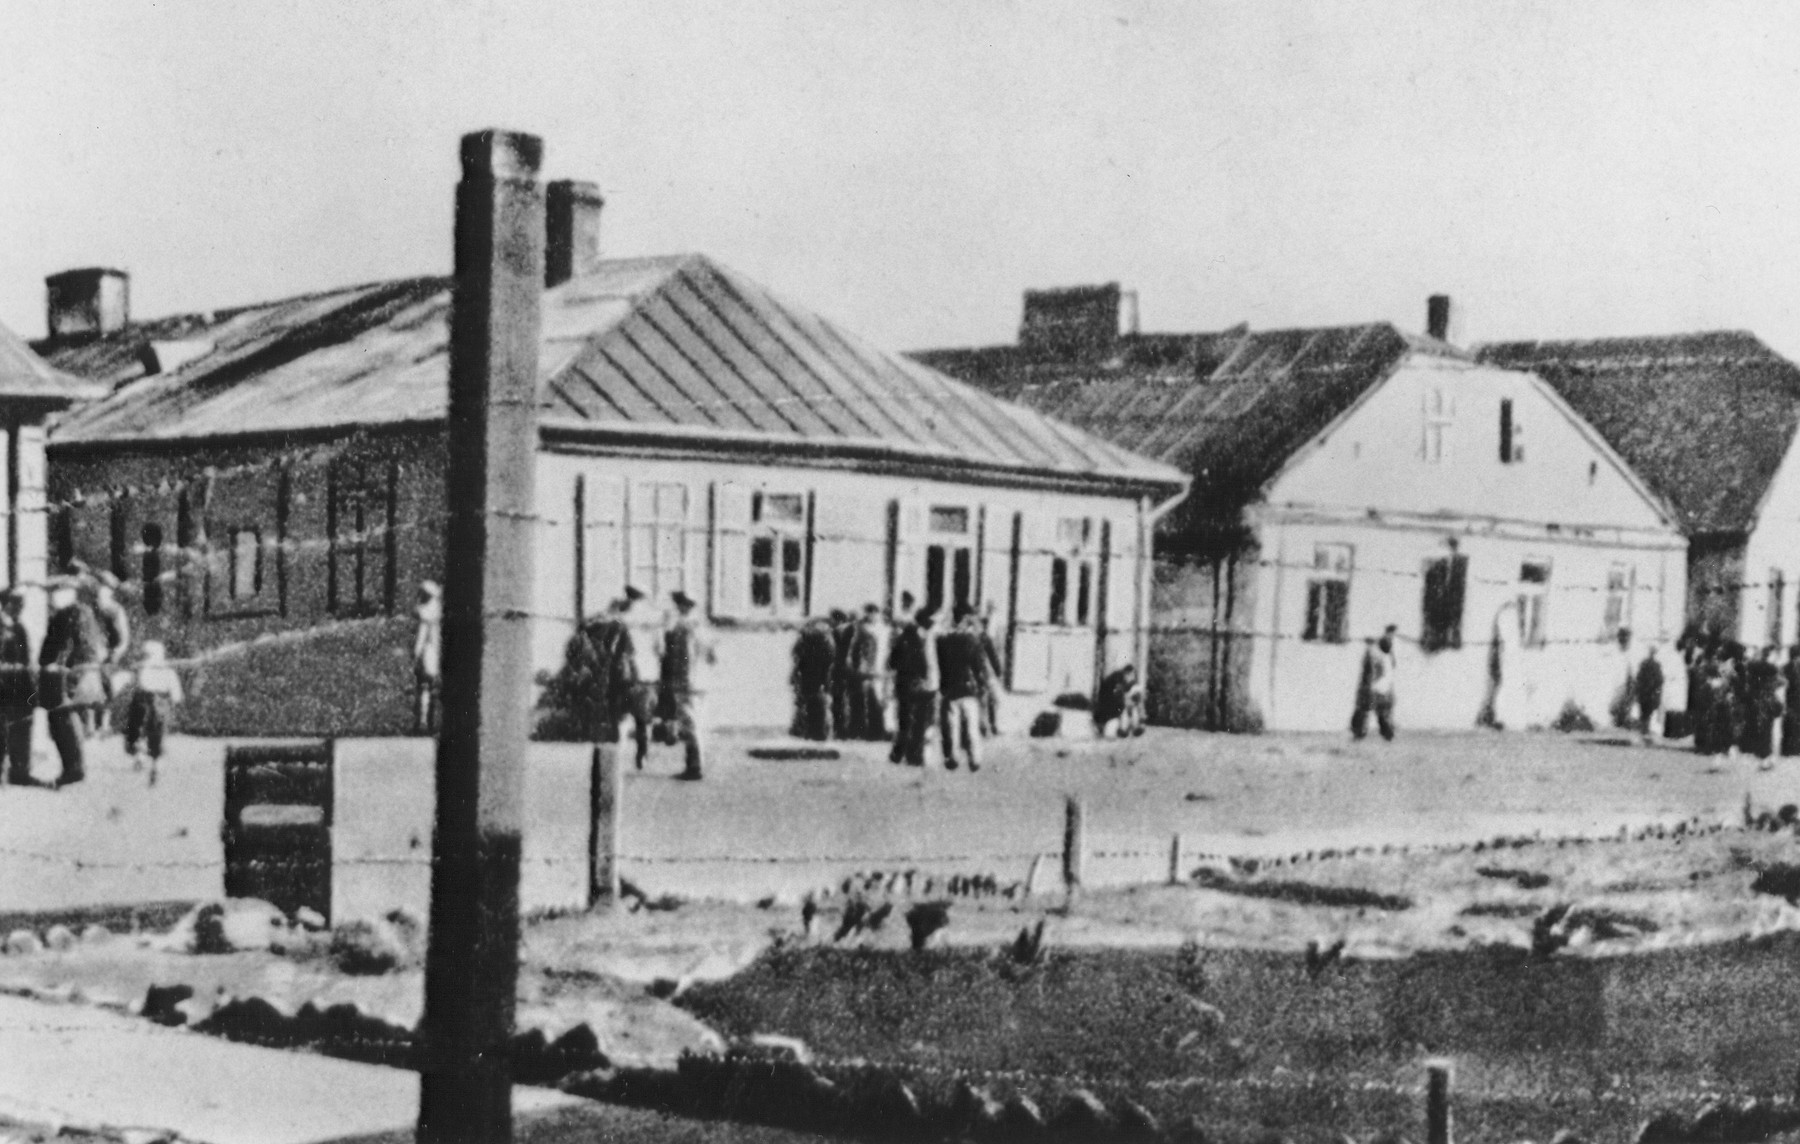 A section of the Miedzyrzec Podlaski ghetto as seen through the barbed wire fence that surrounded it.